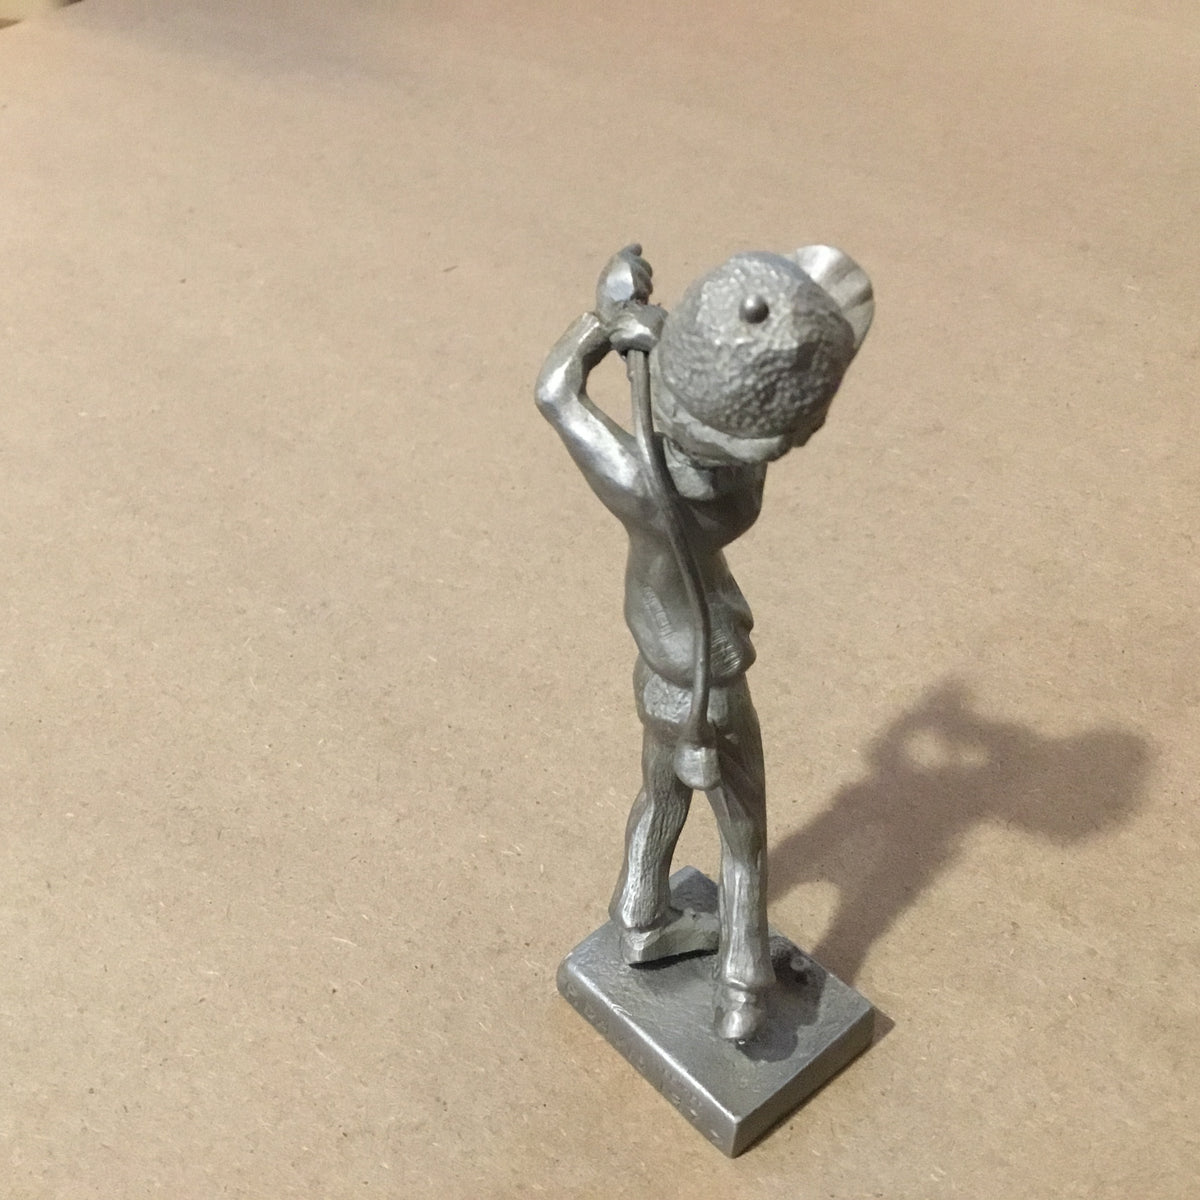 Pewter Golfer Figurine by P. Davis, 1977